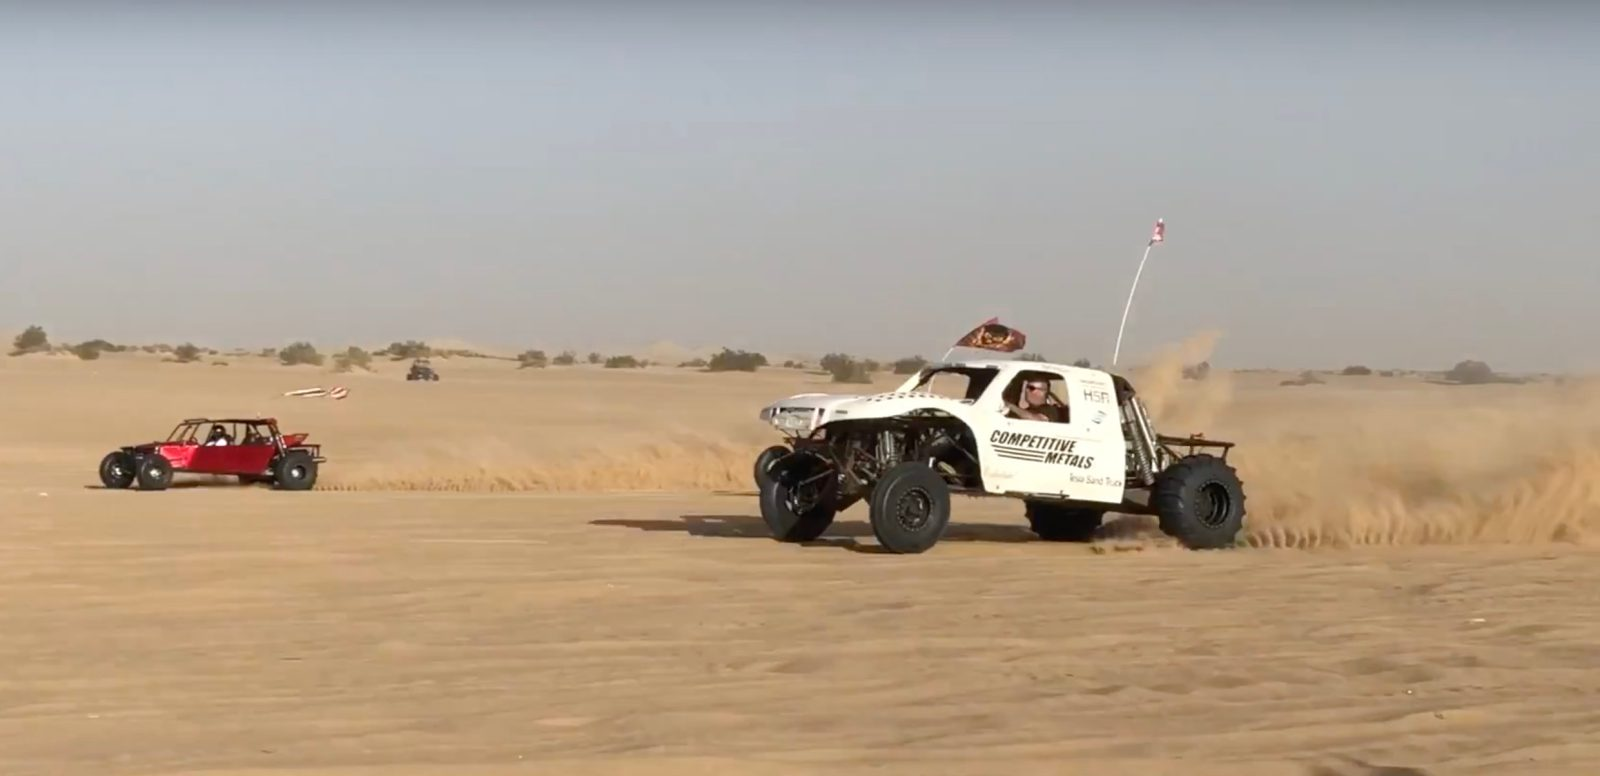 Watch A Tesla Ed Electric Dune Buggy Accelerate Shockingly Fast In Sand